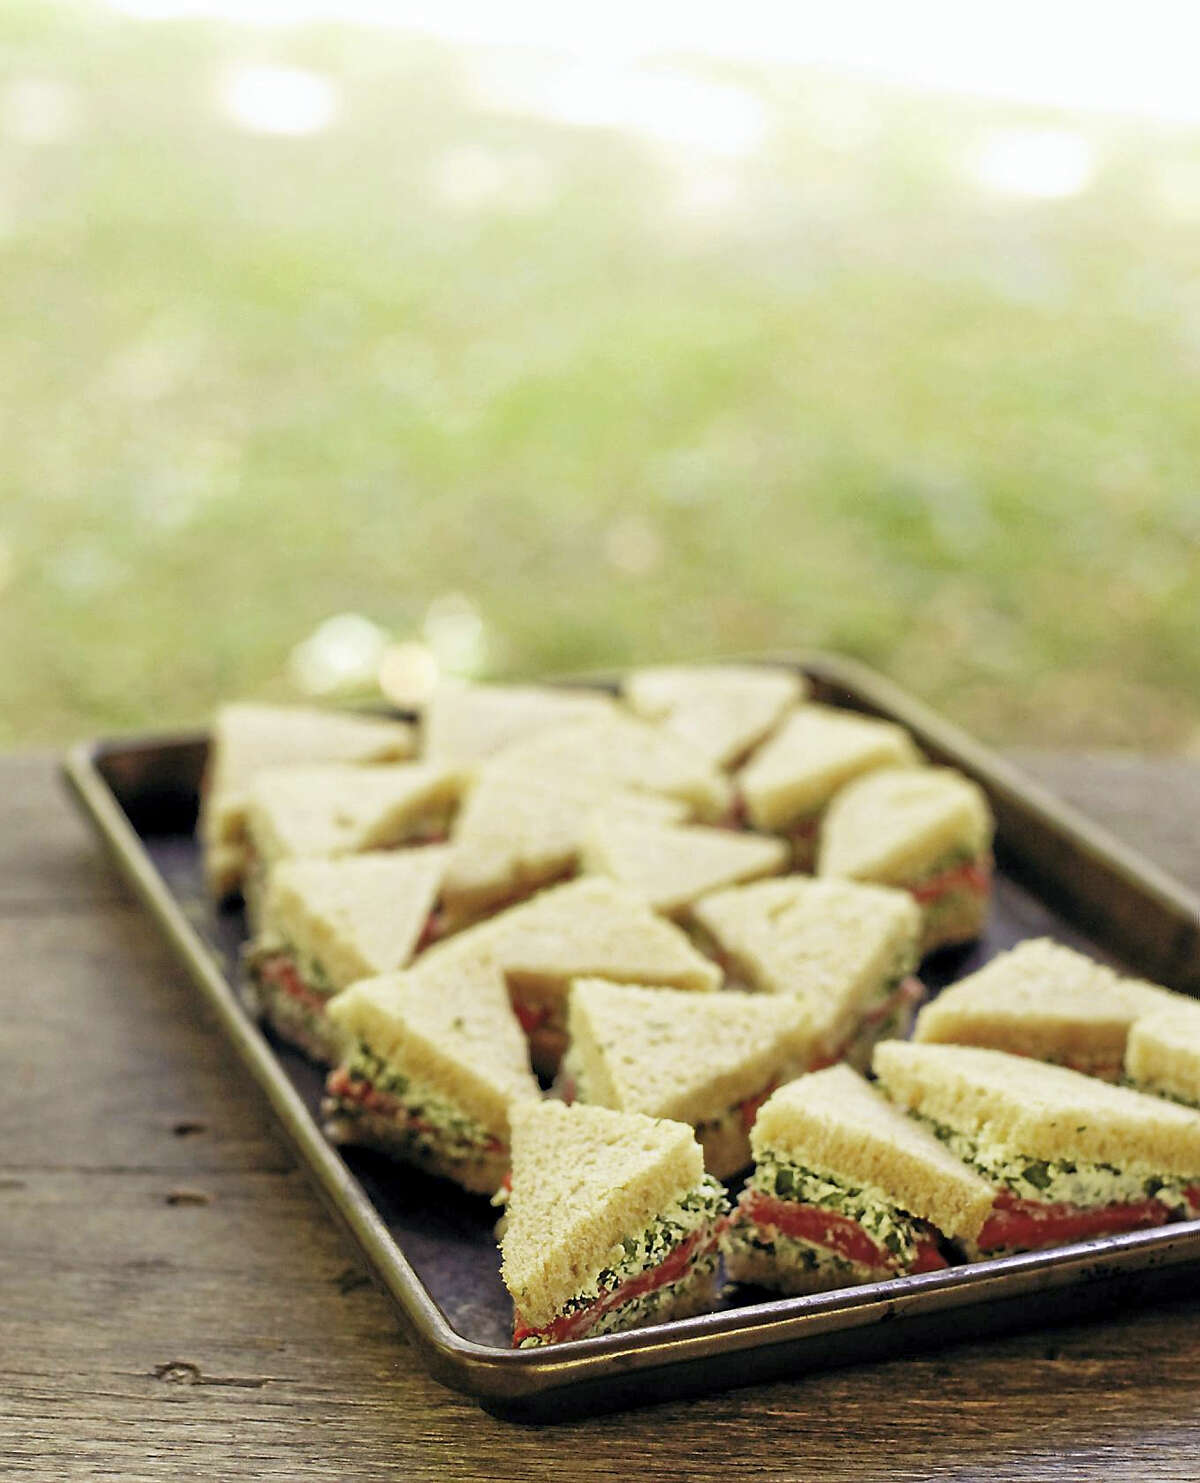 Smoked salmon and herb finger sandwiches.